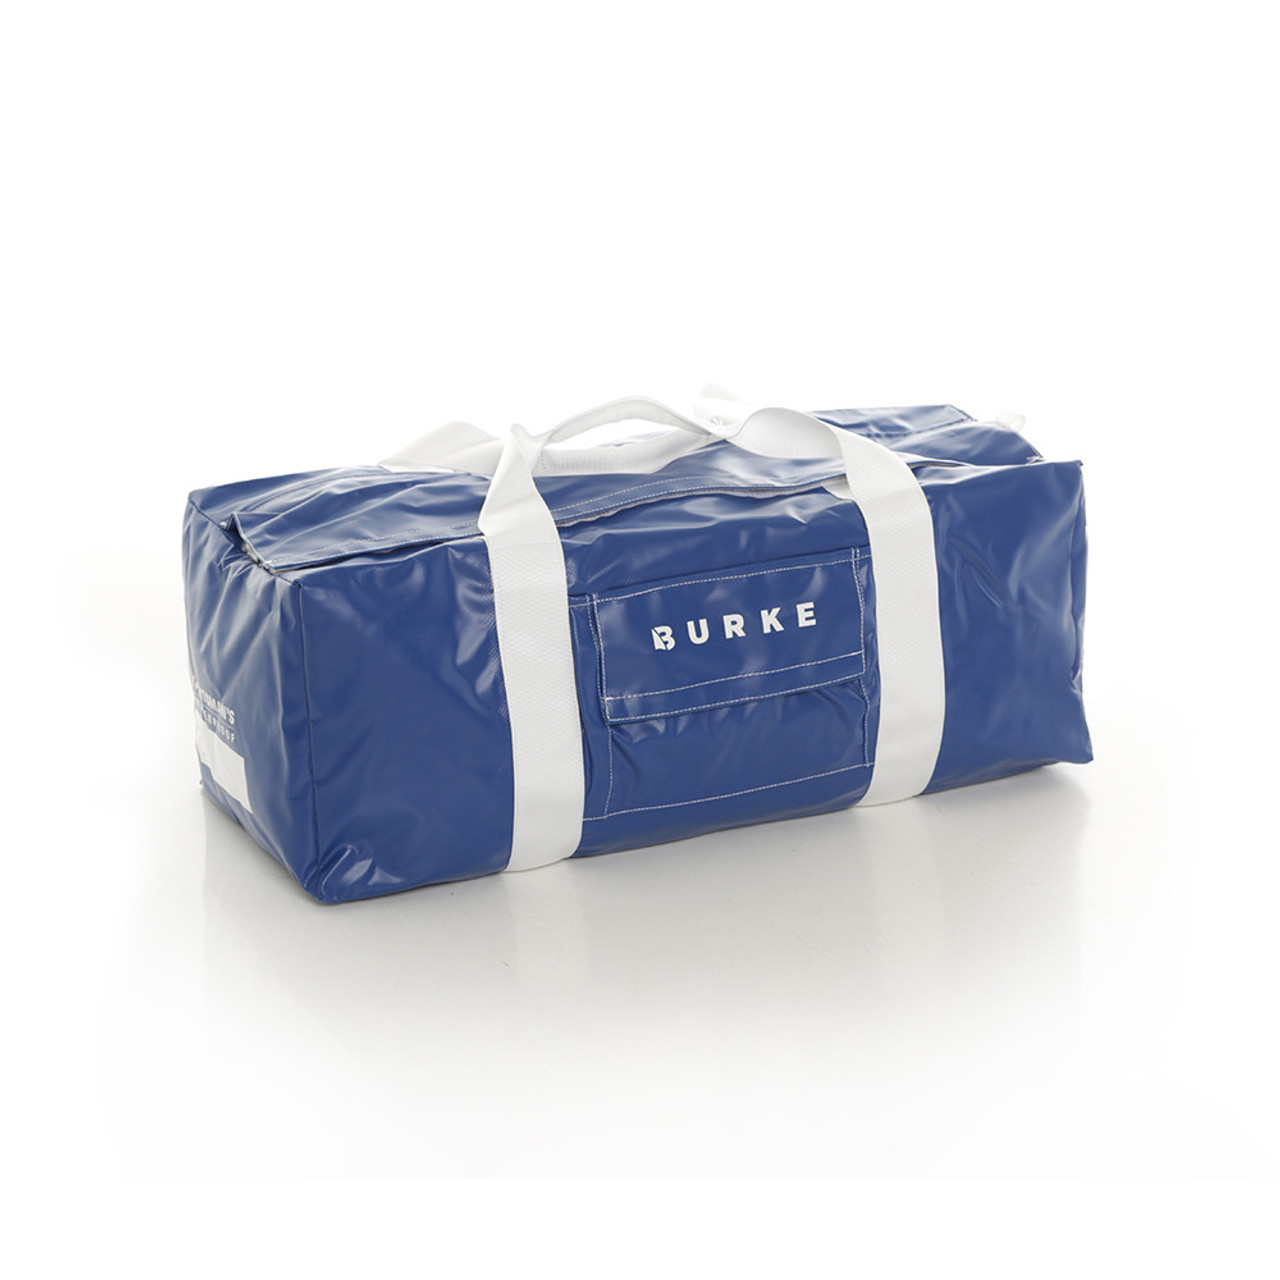 Burke small yachtsmans waterproof blue gear bag has been developed for sailing performance as a premium.